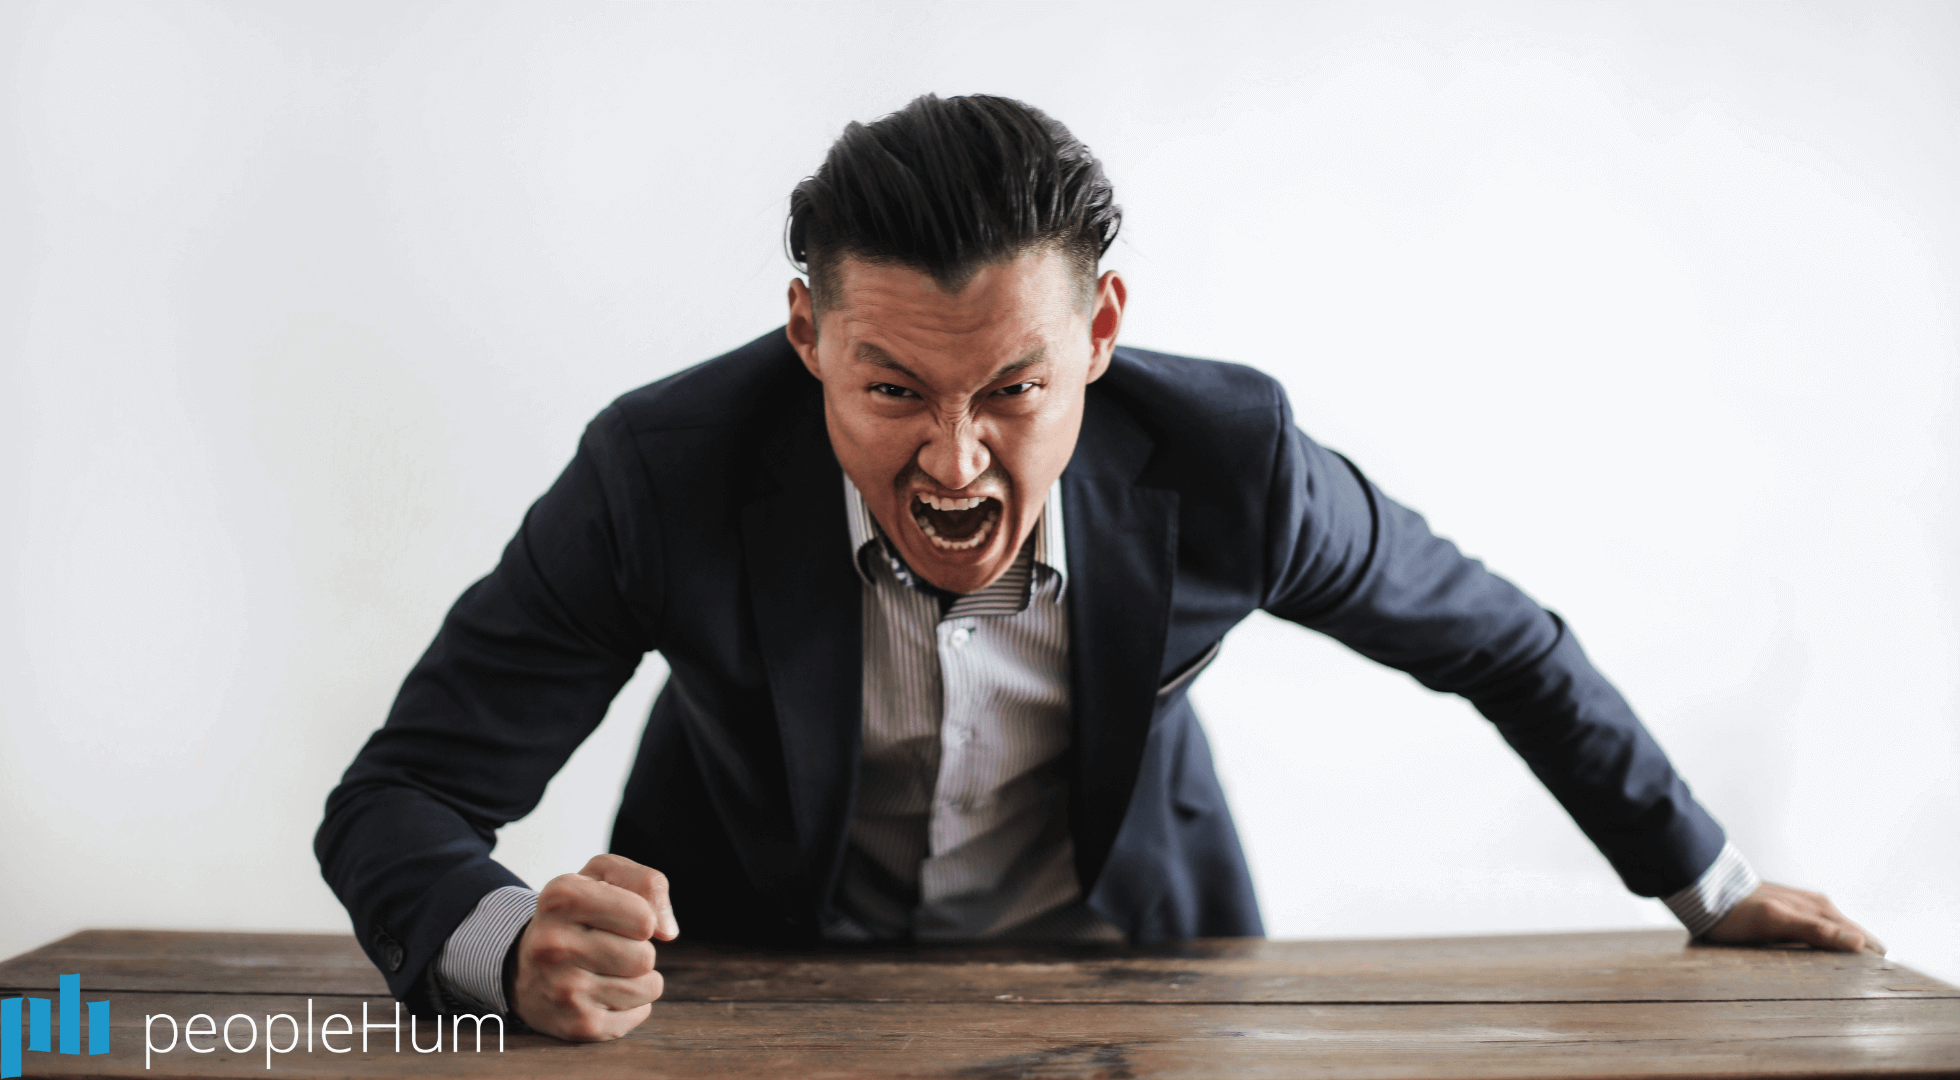 Conflict levels and symptoms of conflict in the company